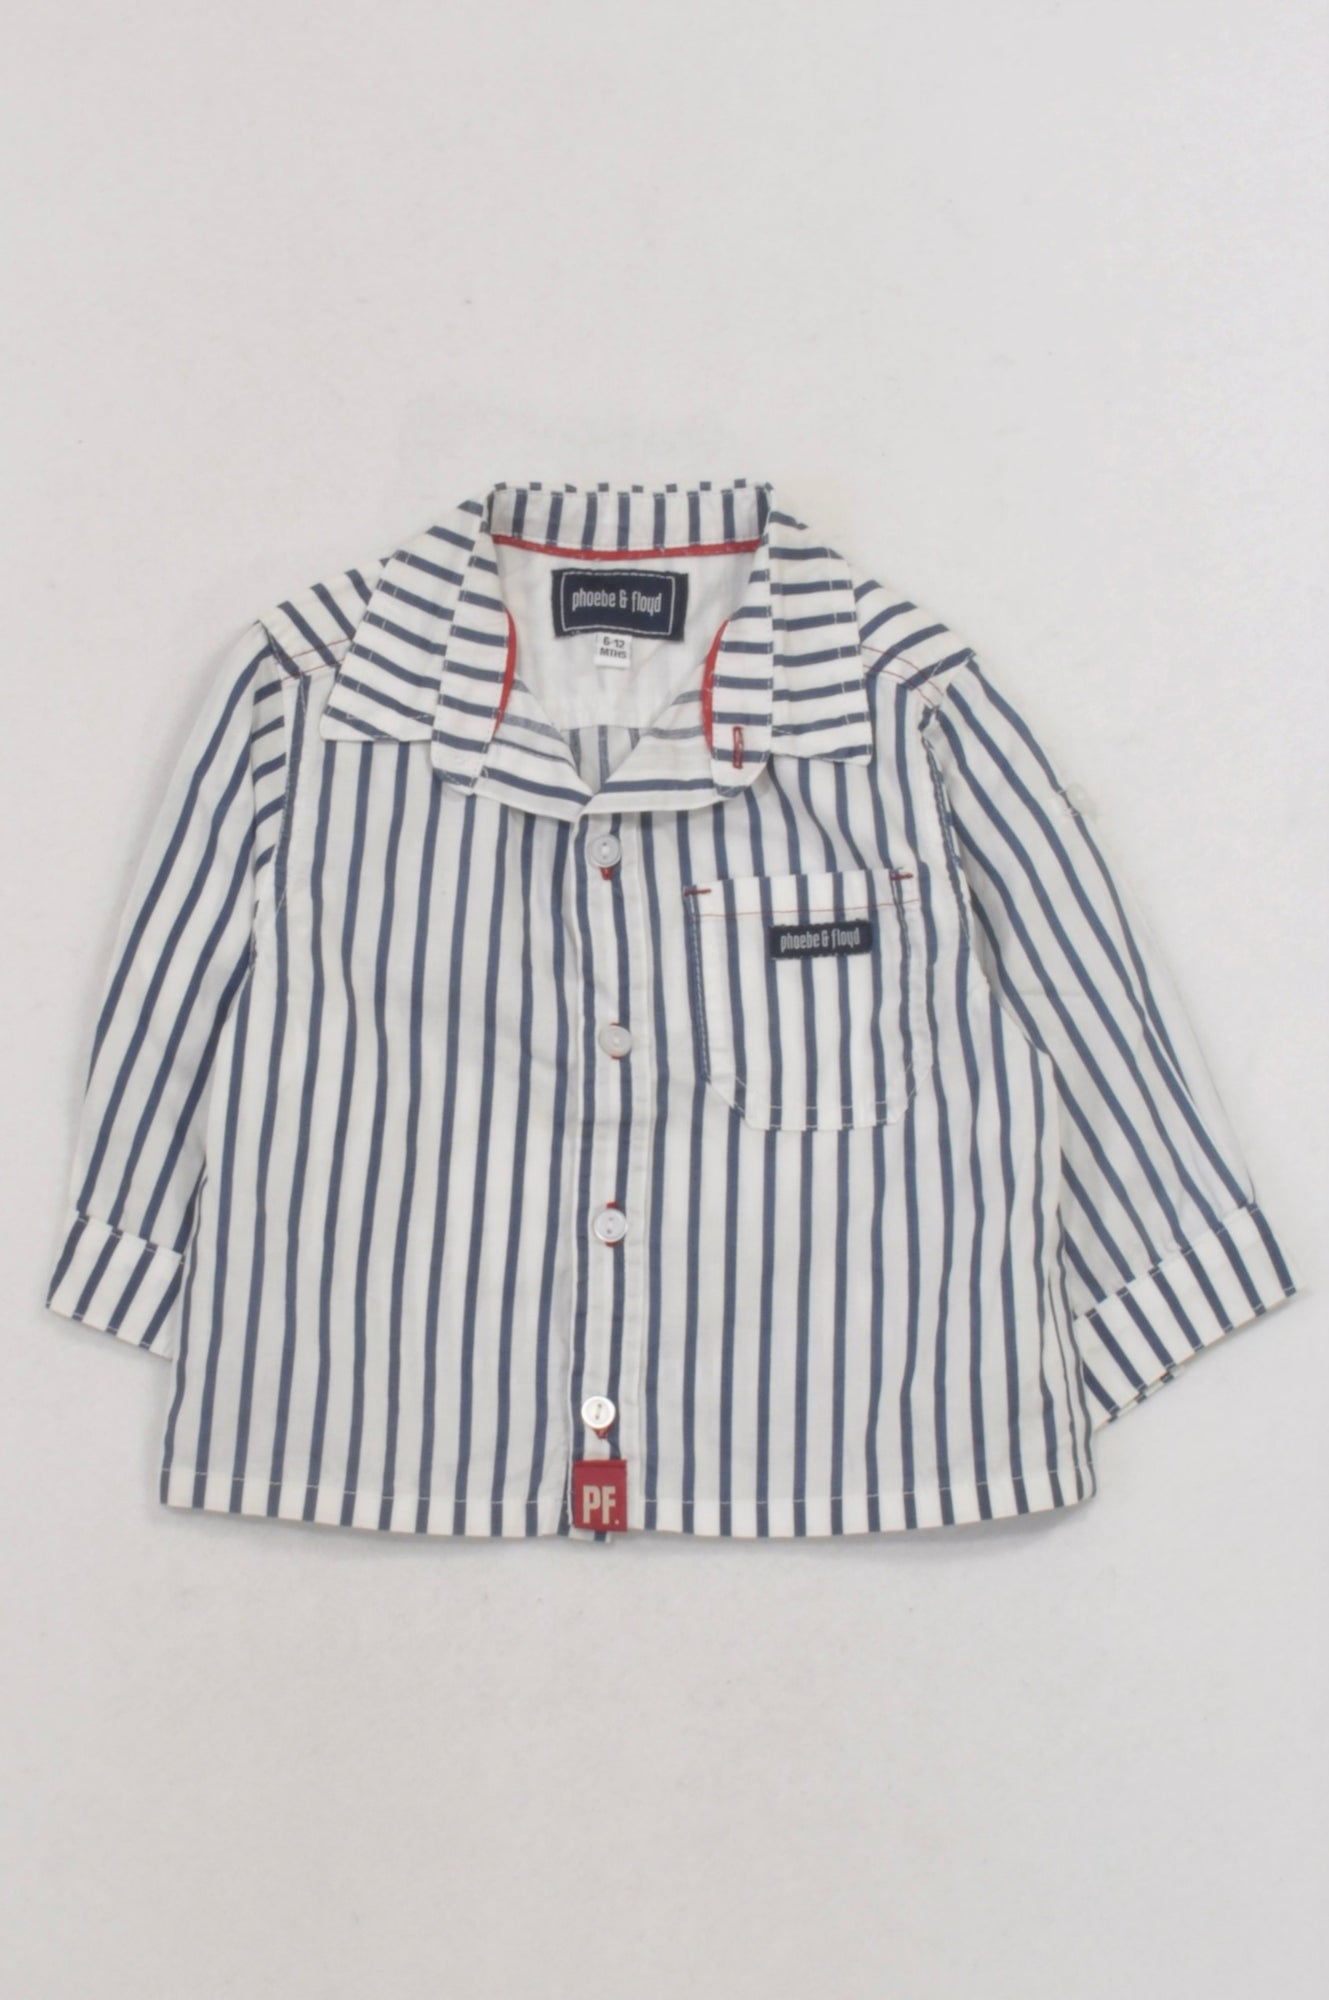 Phoebe & Floyd White & Blue Stripe Collared Shirt Boys 6-12 months